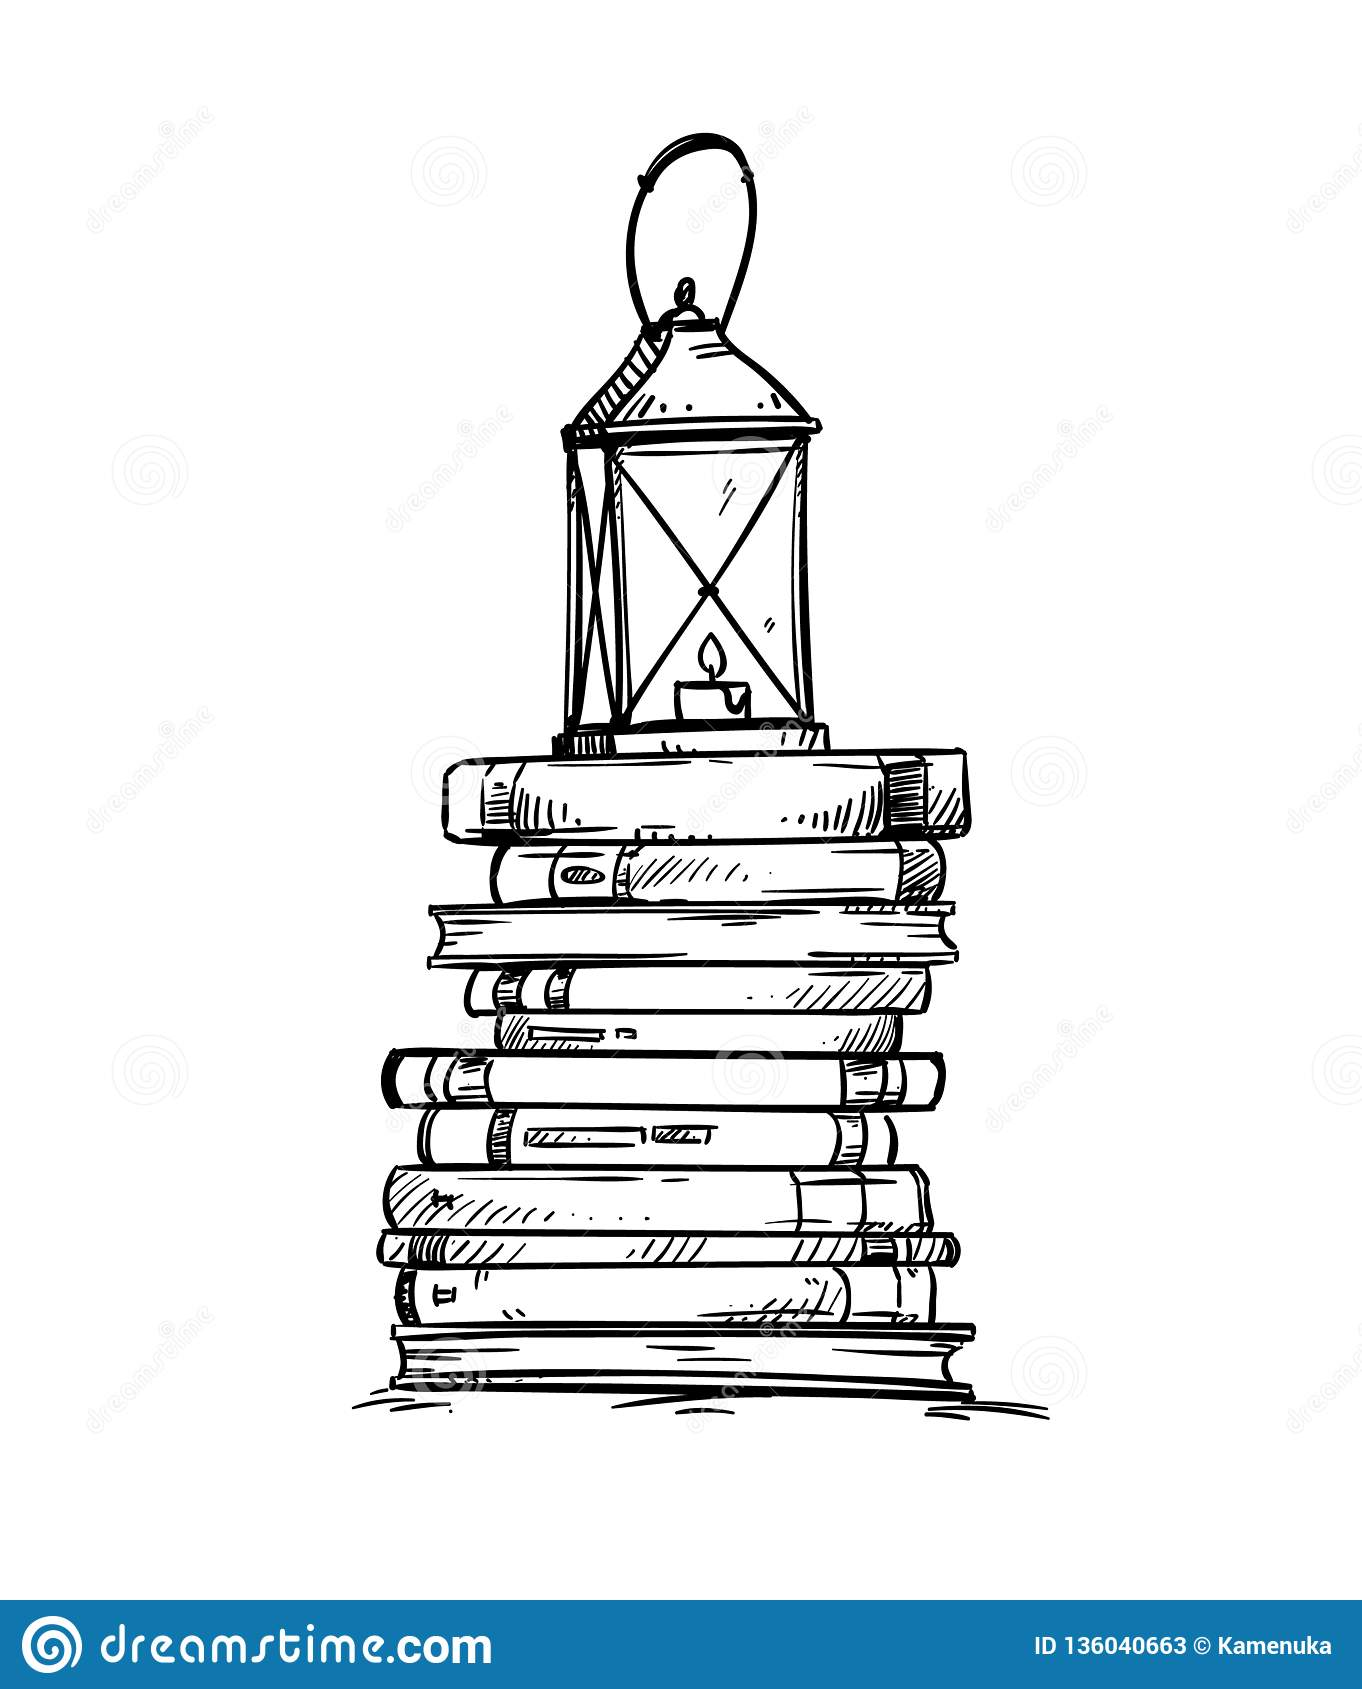 Pile Of Books With Old Lantern On The Top Vector Illustration Stock Vector Illustration Of Drawing Black 136040663